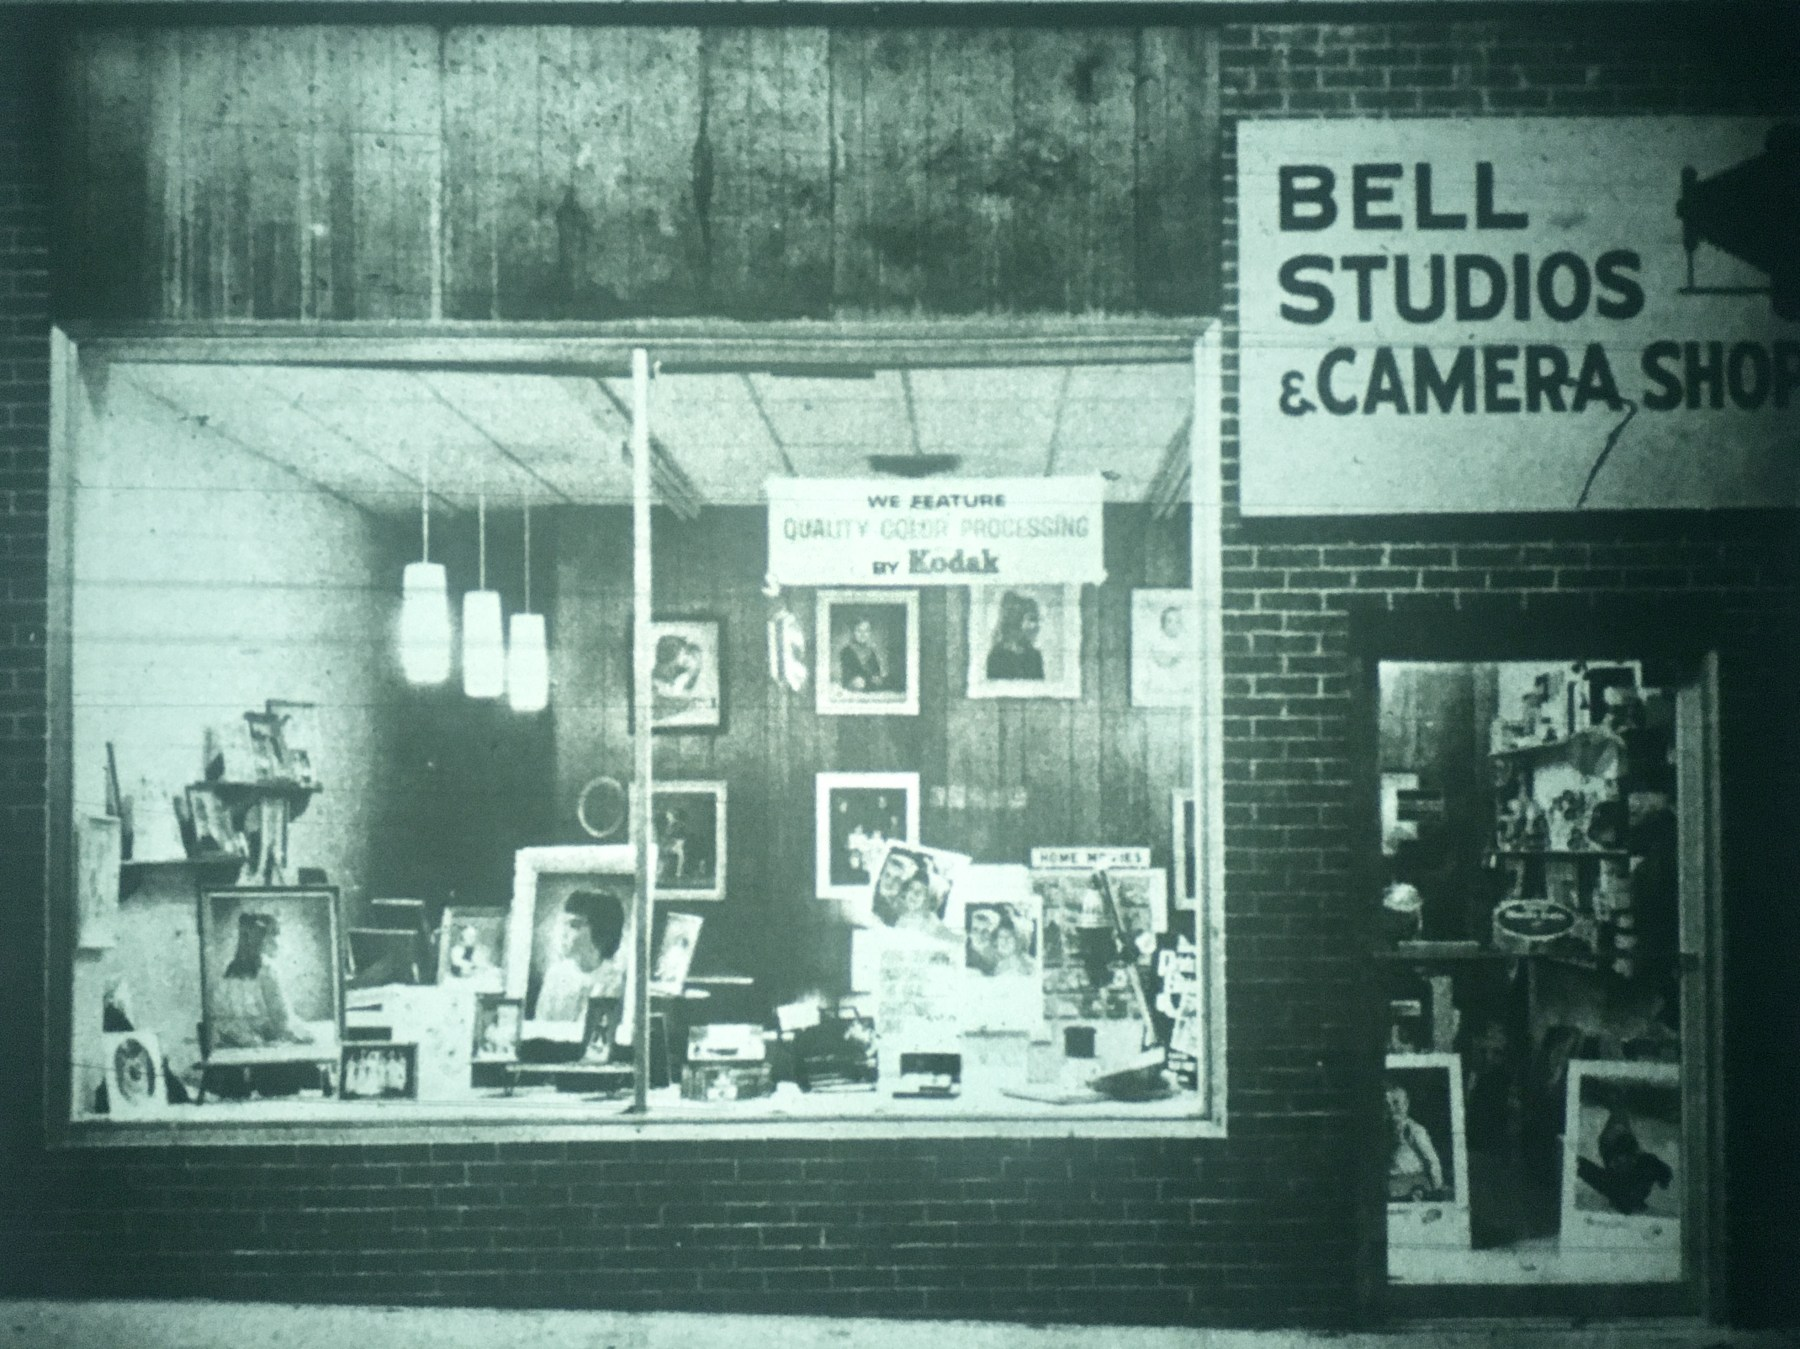 Bell Studios & Camera Shop Burlington MA